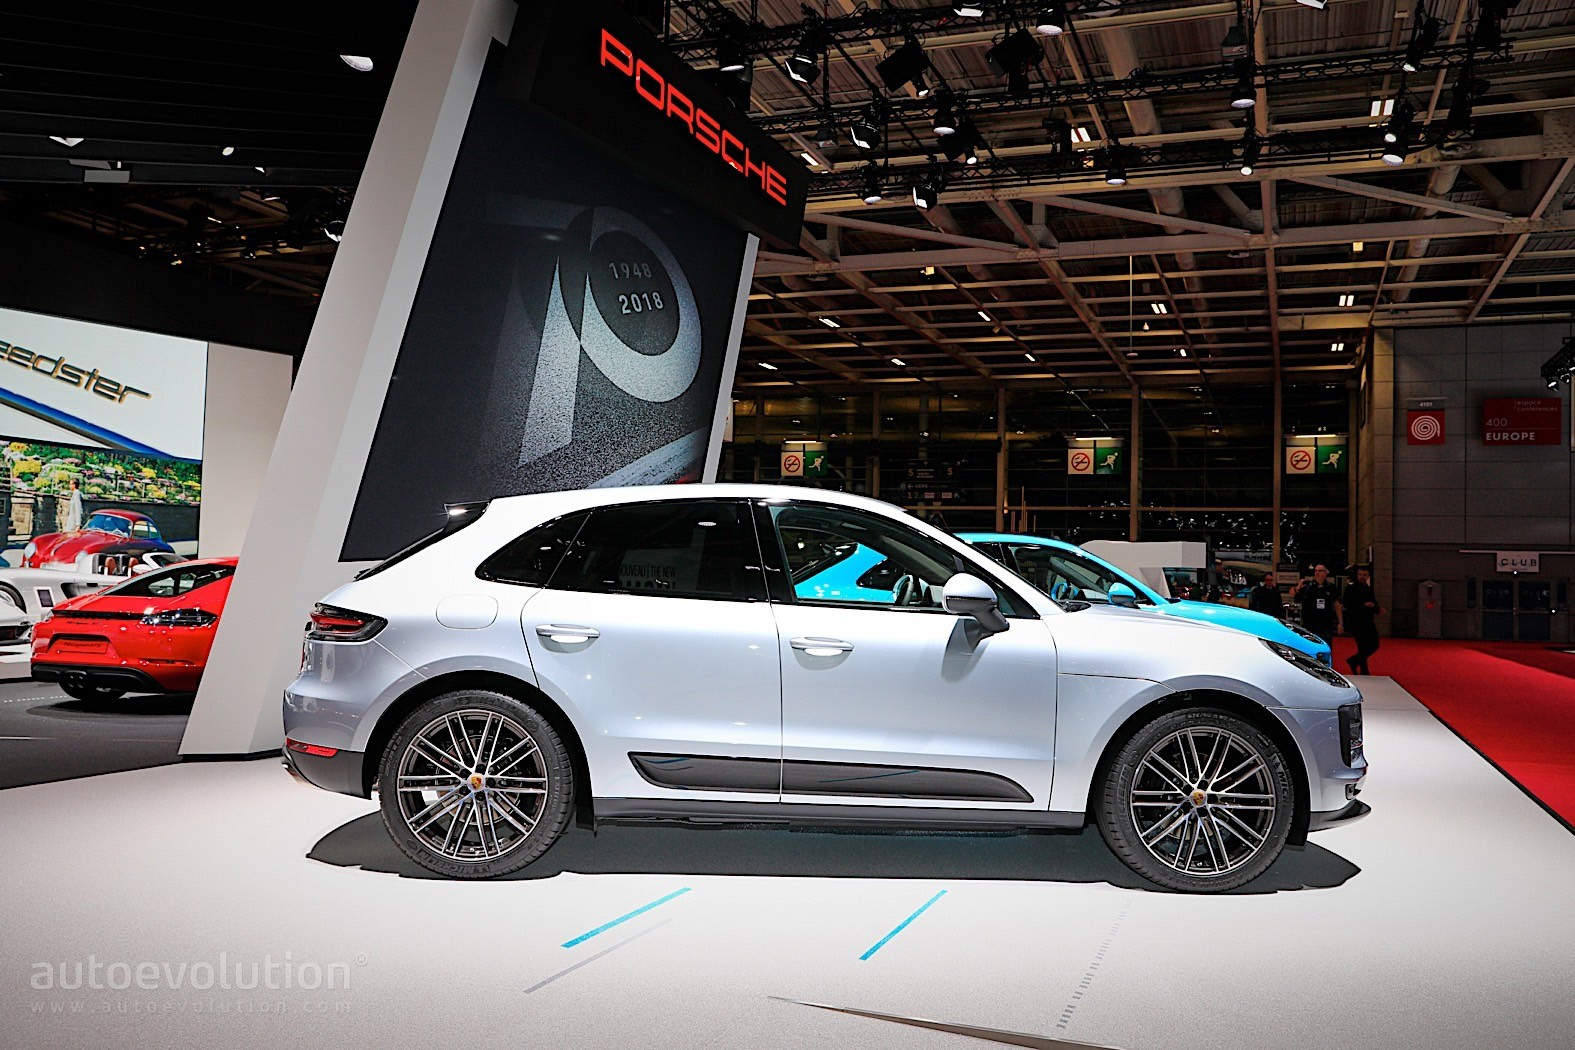 2019 Porsche Macan Facelift Lands In Paris With Bright New